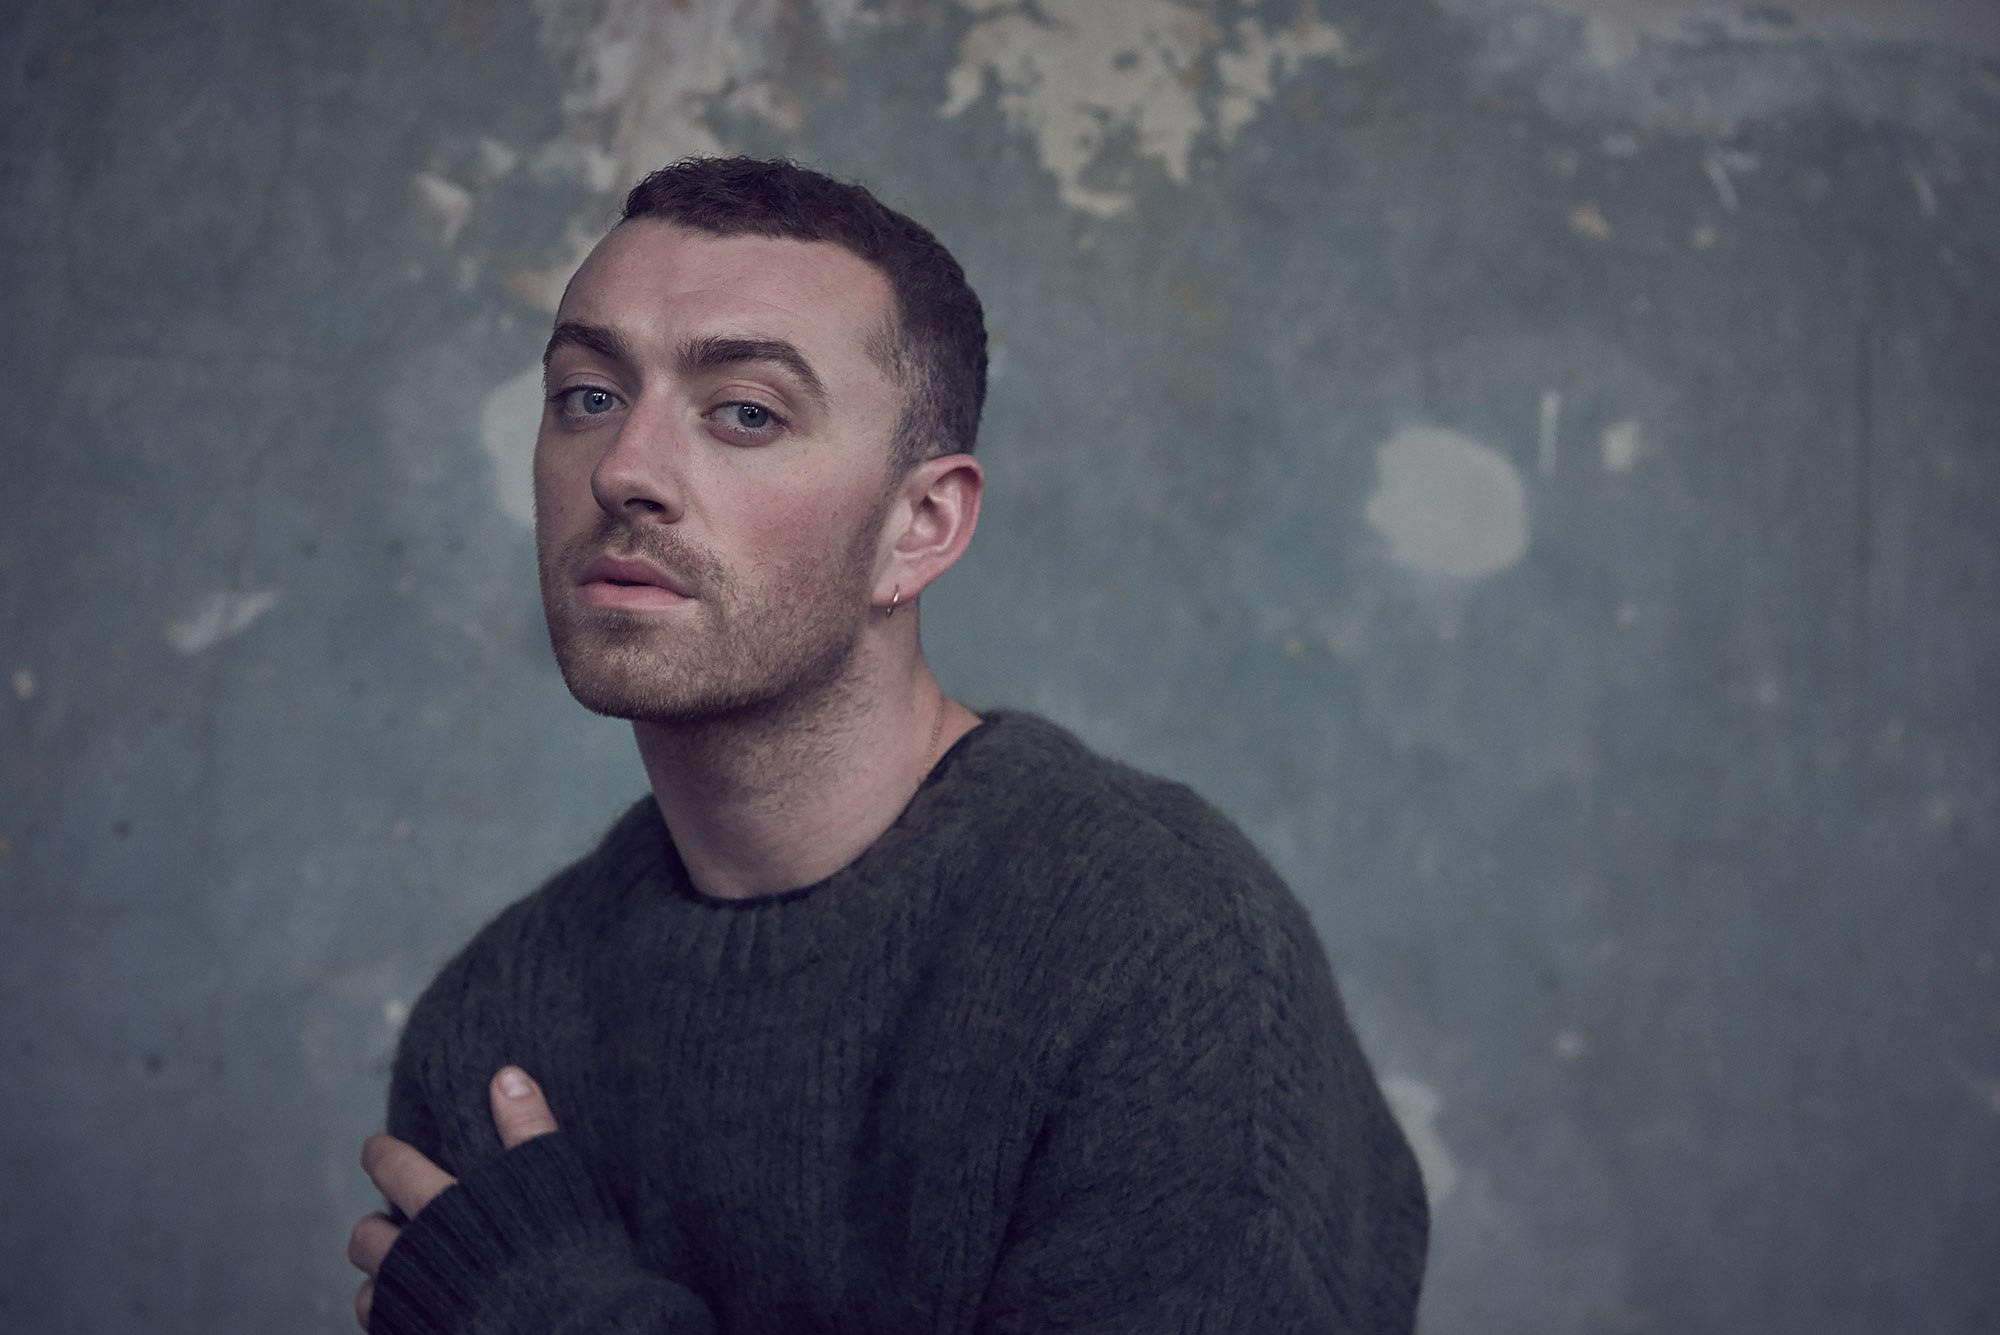 I'm neither a man nor a woman-British singer Sam Smith